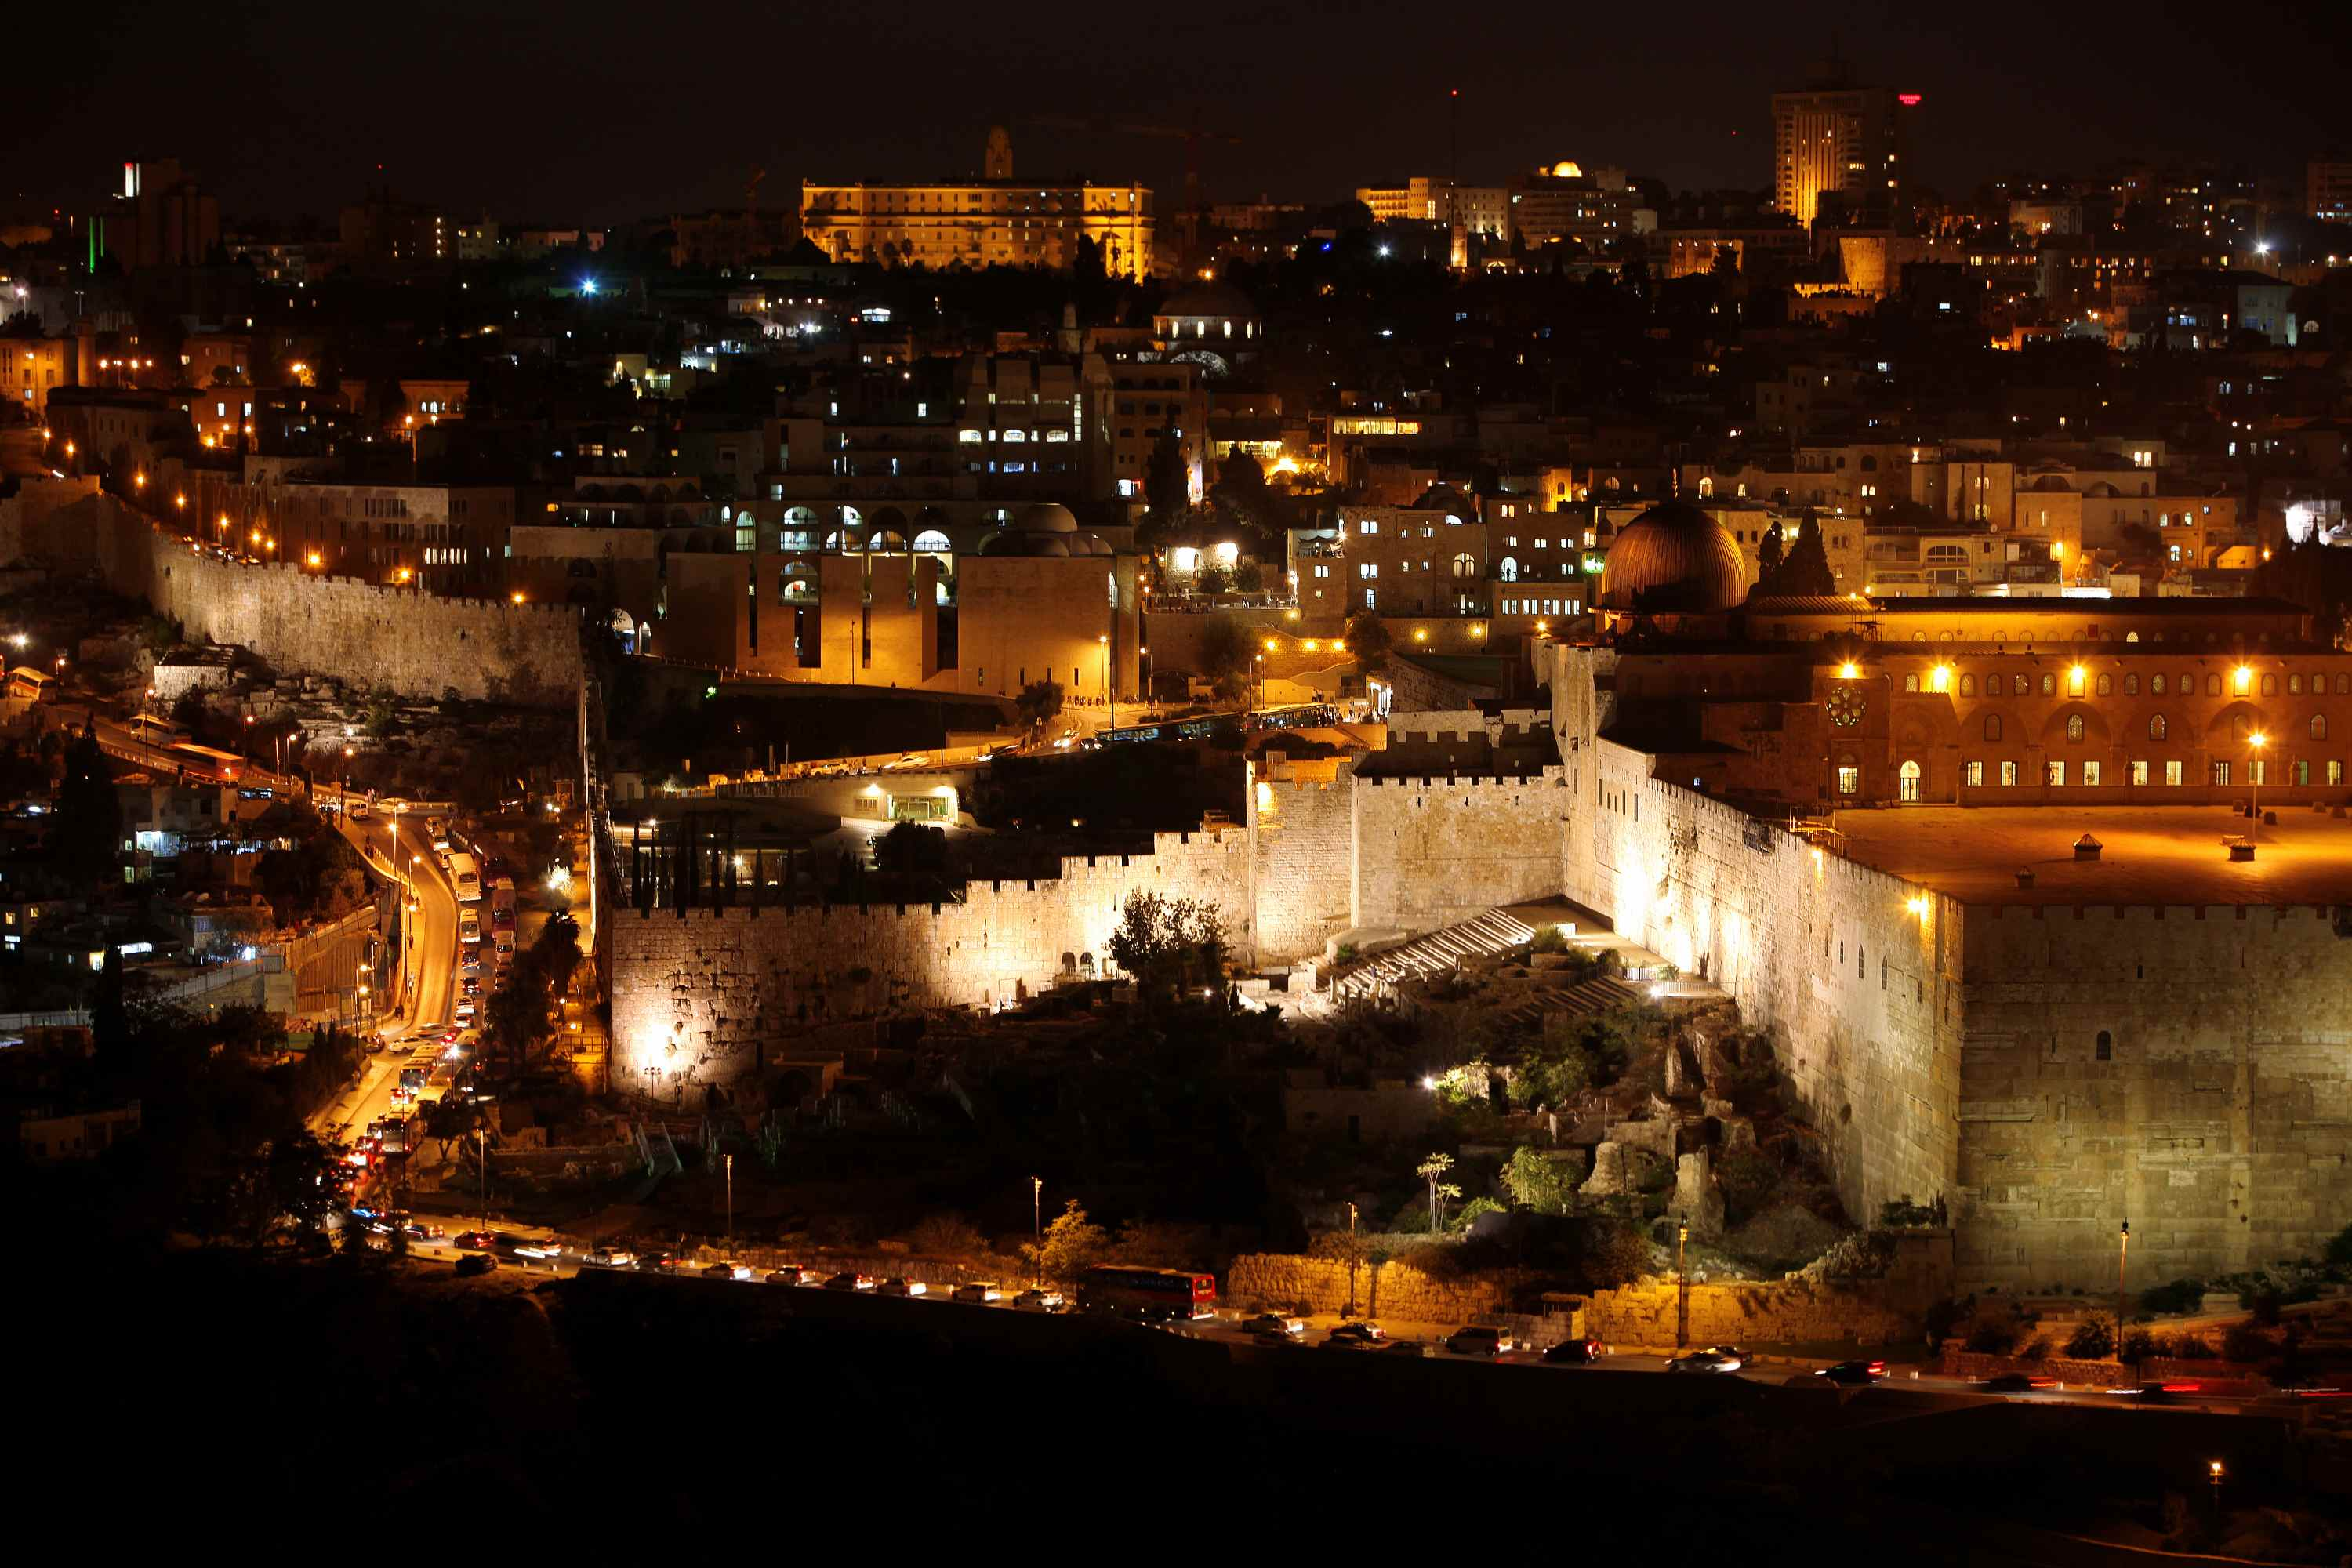 Classic Jerusalem - Night in old city, Temple Mount with Al-Aqsa Mosque, view from the Mount of Olives, Israel